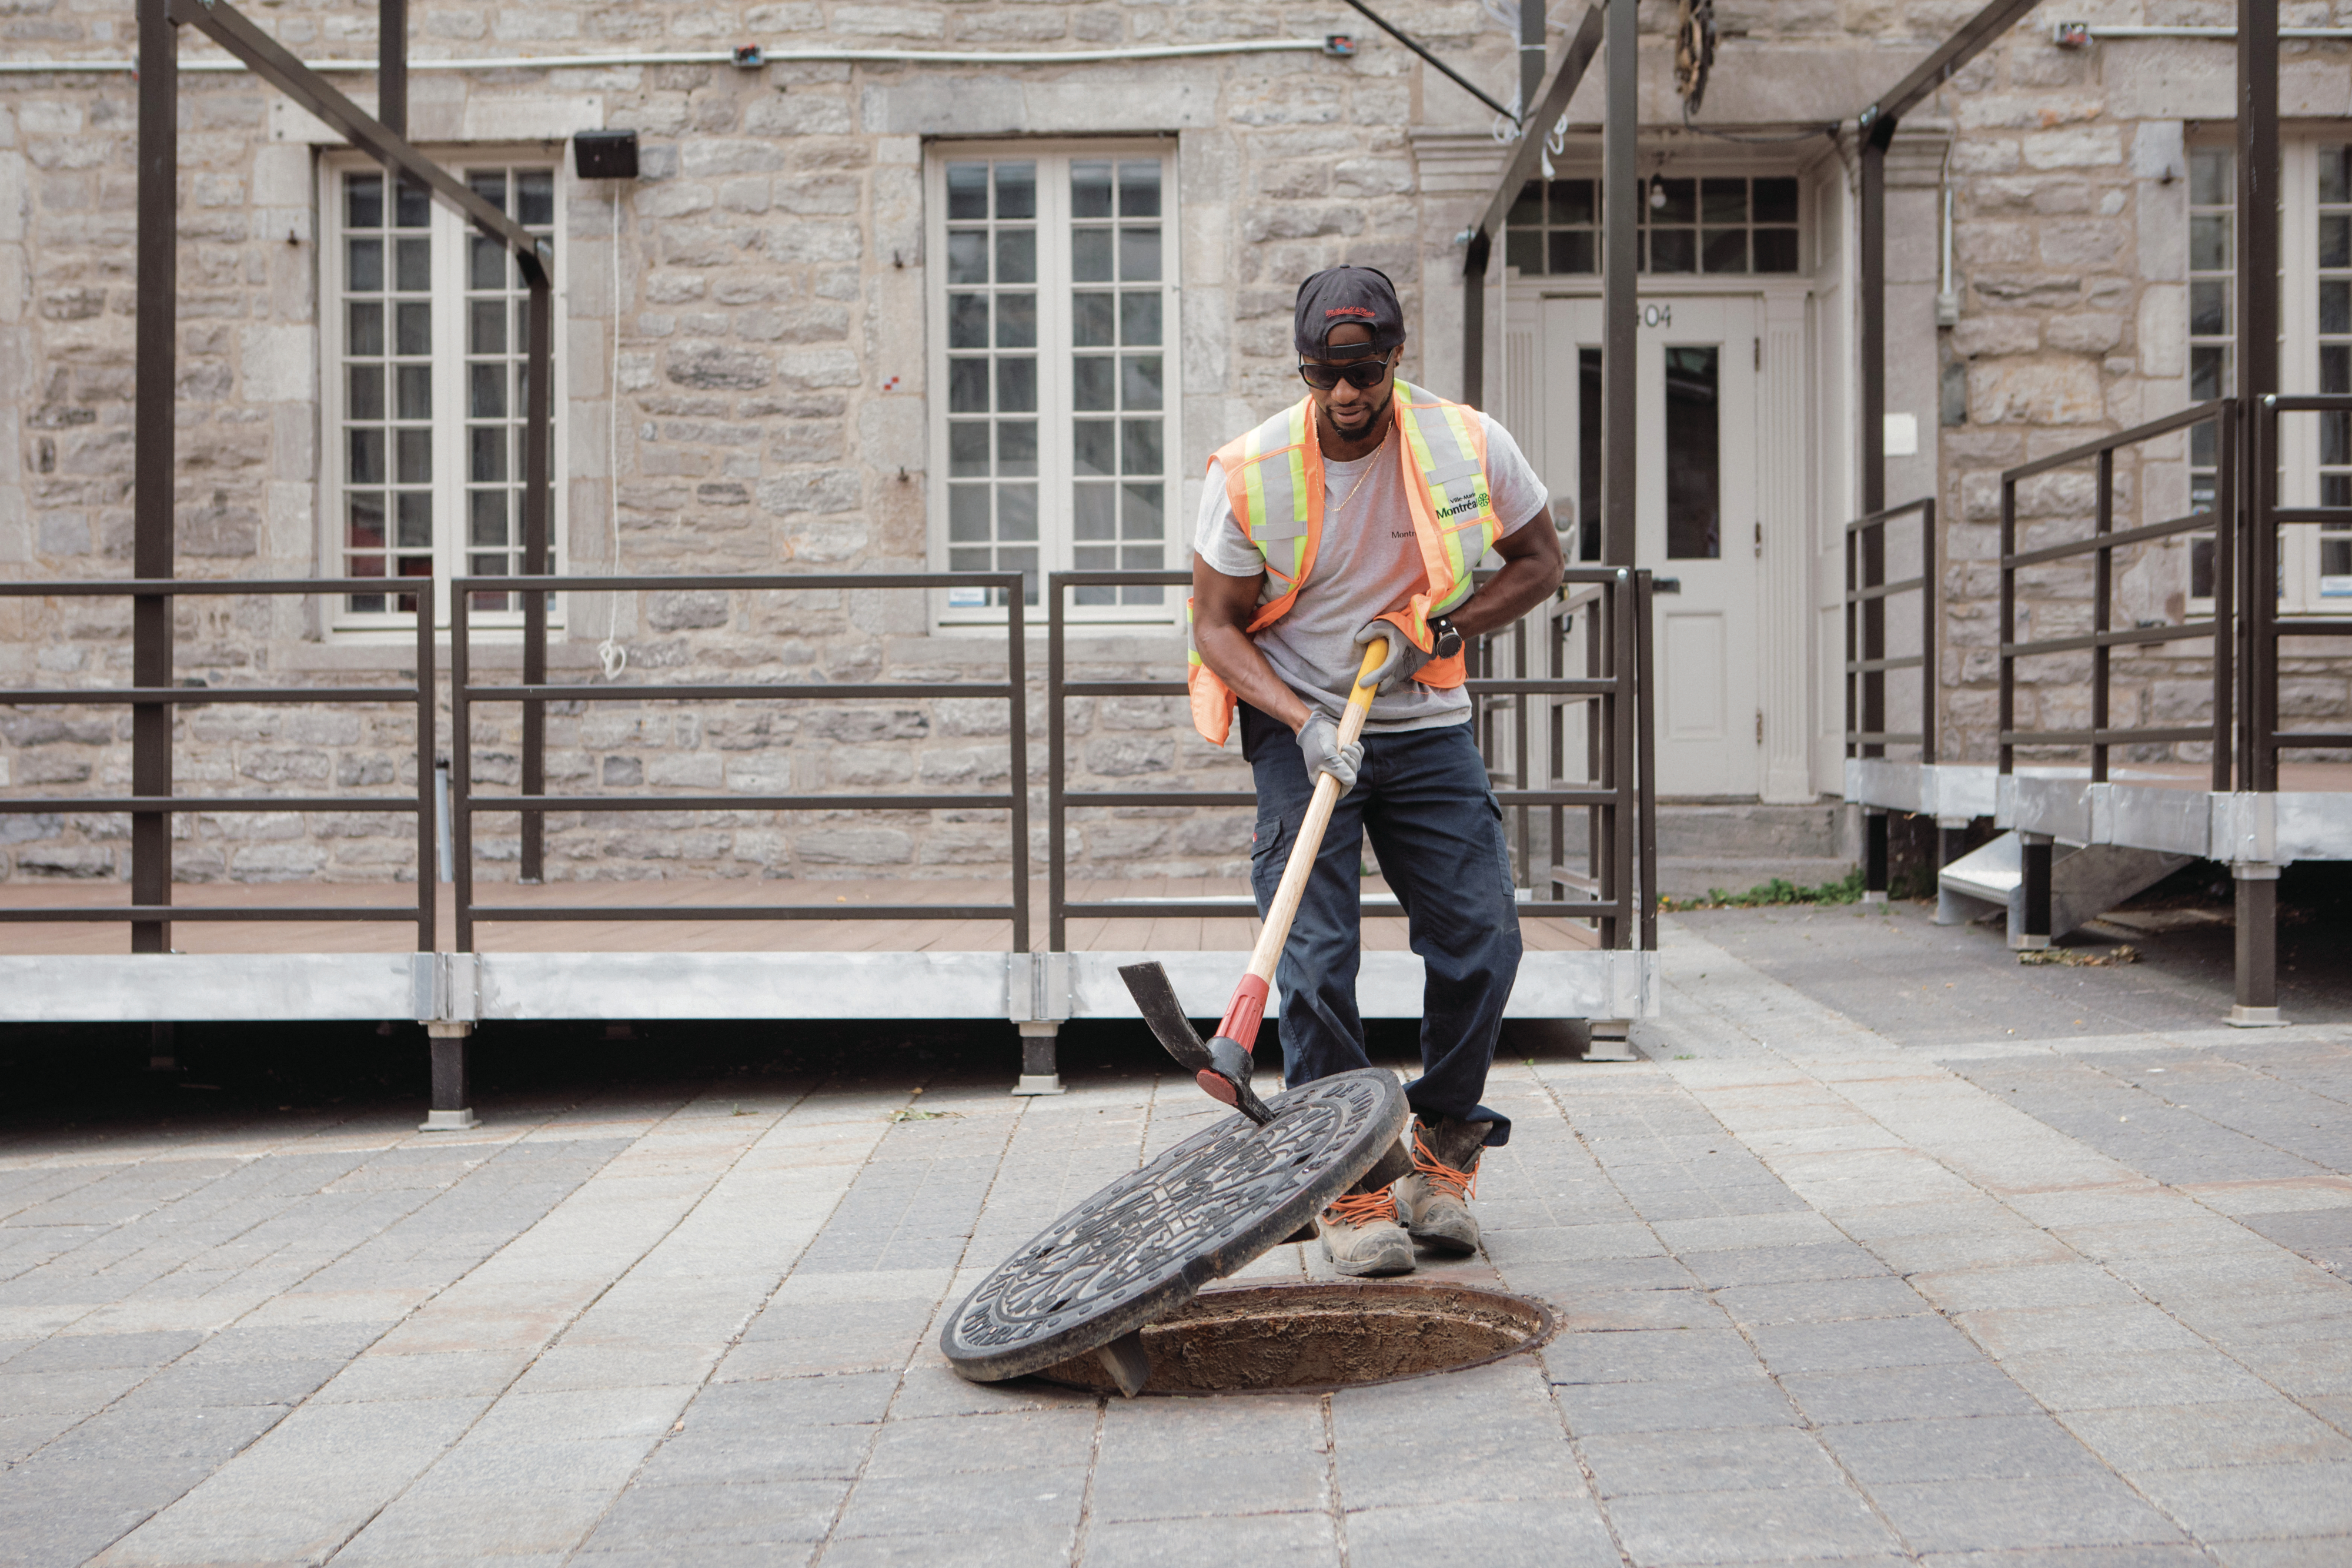 A worker installs a manhole cover in the city's Old Port (Photograph by Chloë Ellingson)